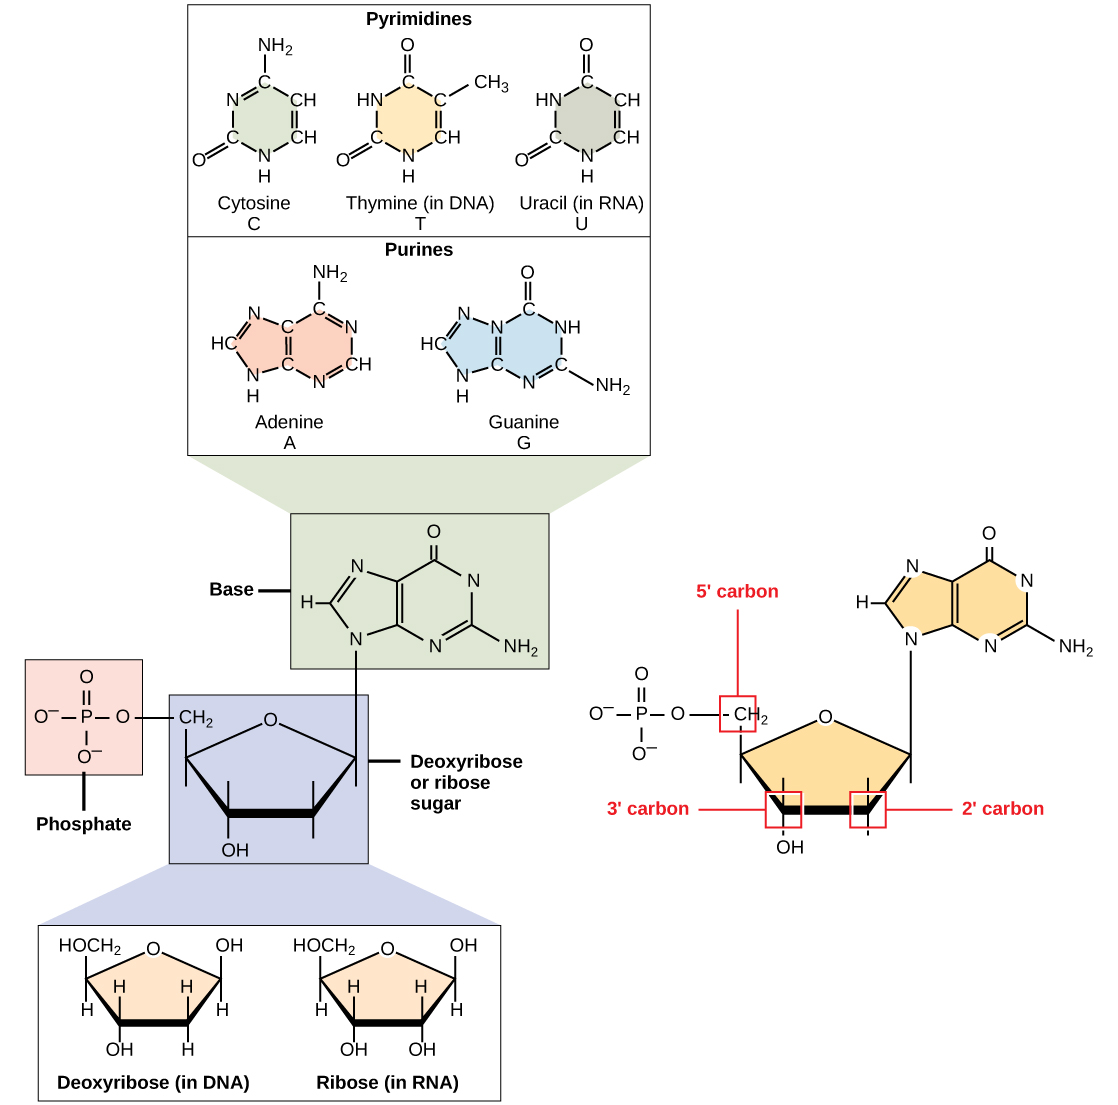 The molecular structure of a nucleotide is shown. The core of the nucleotide is a pentose whose carbon residues are numbered one prime through five prime. The base is attached to the one prime carbon, and the phosphate is attached to the five prime carbon. Two kinds of pentose are found in nucleotides: ribose and deoxyribose. Deoxyribose has an H instead of OH at the two prime position. Five kinds of base are found in nucleotides. Two of these, adenine and guanine, are purine bases with two rings fused together. The other three, cytosine, thymine and uracil, have one six-membered ring.